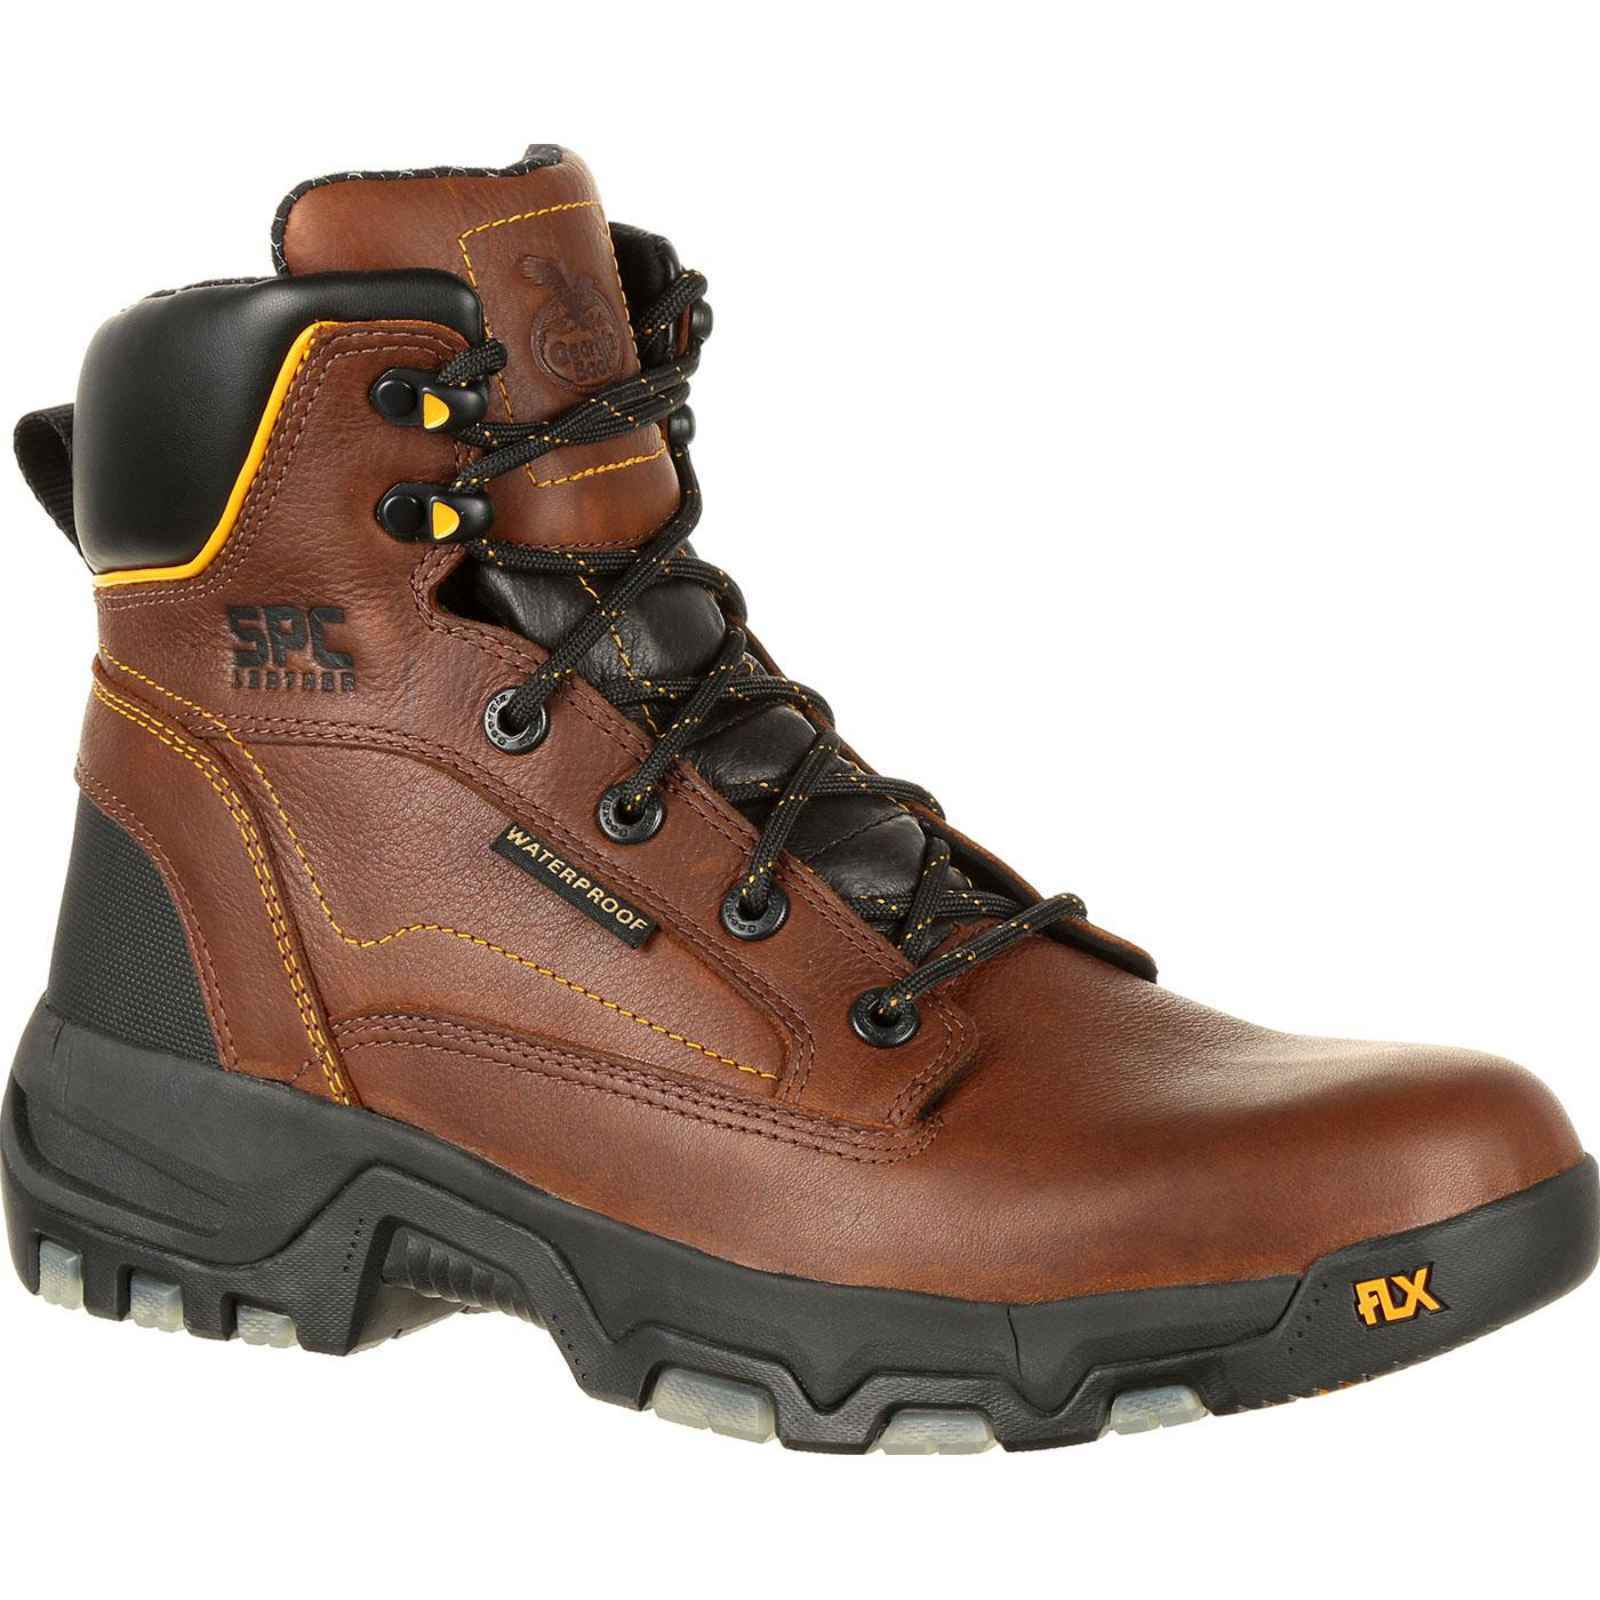 Georgia FlxPoint 6 Inch Waterproof Composite Toe Work Boot GB00168